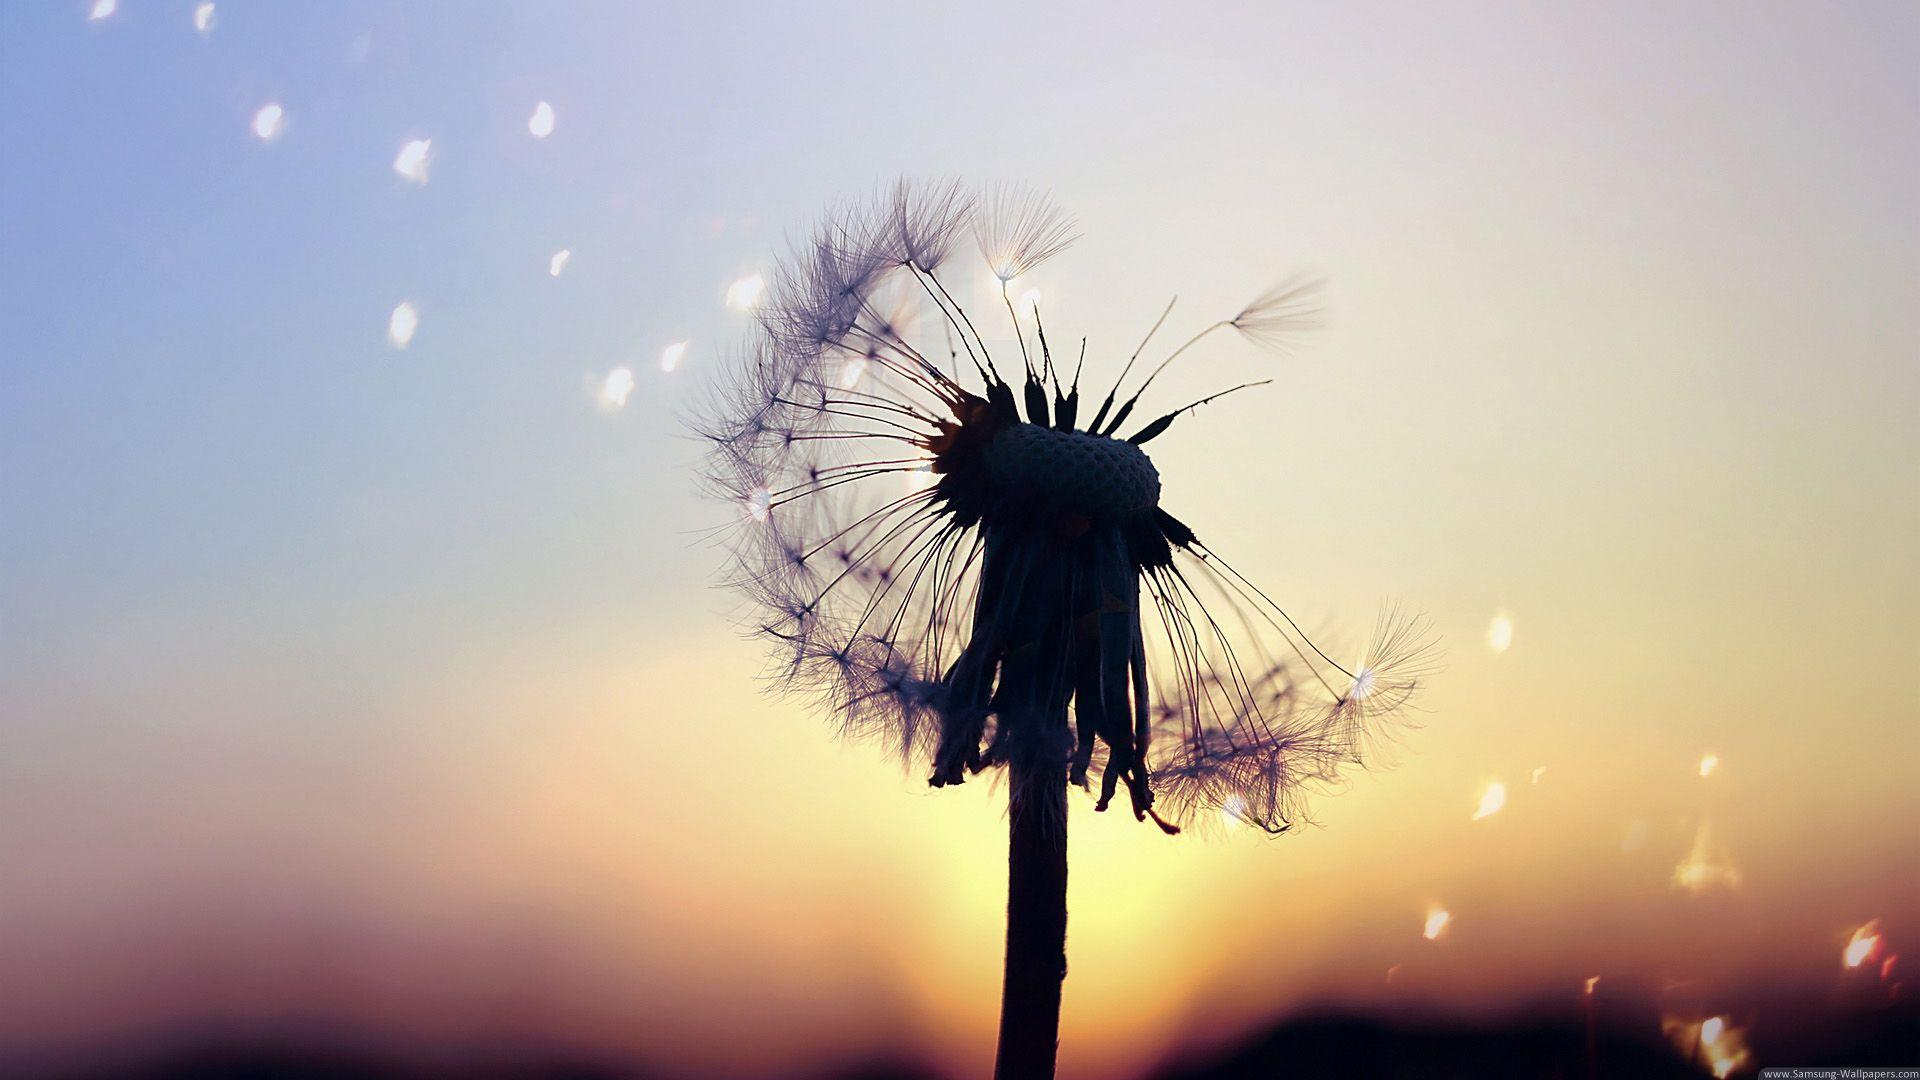 Wallpapers For > Samsung Galaxy Dandelion Wallpapers